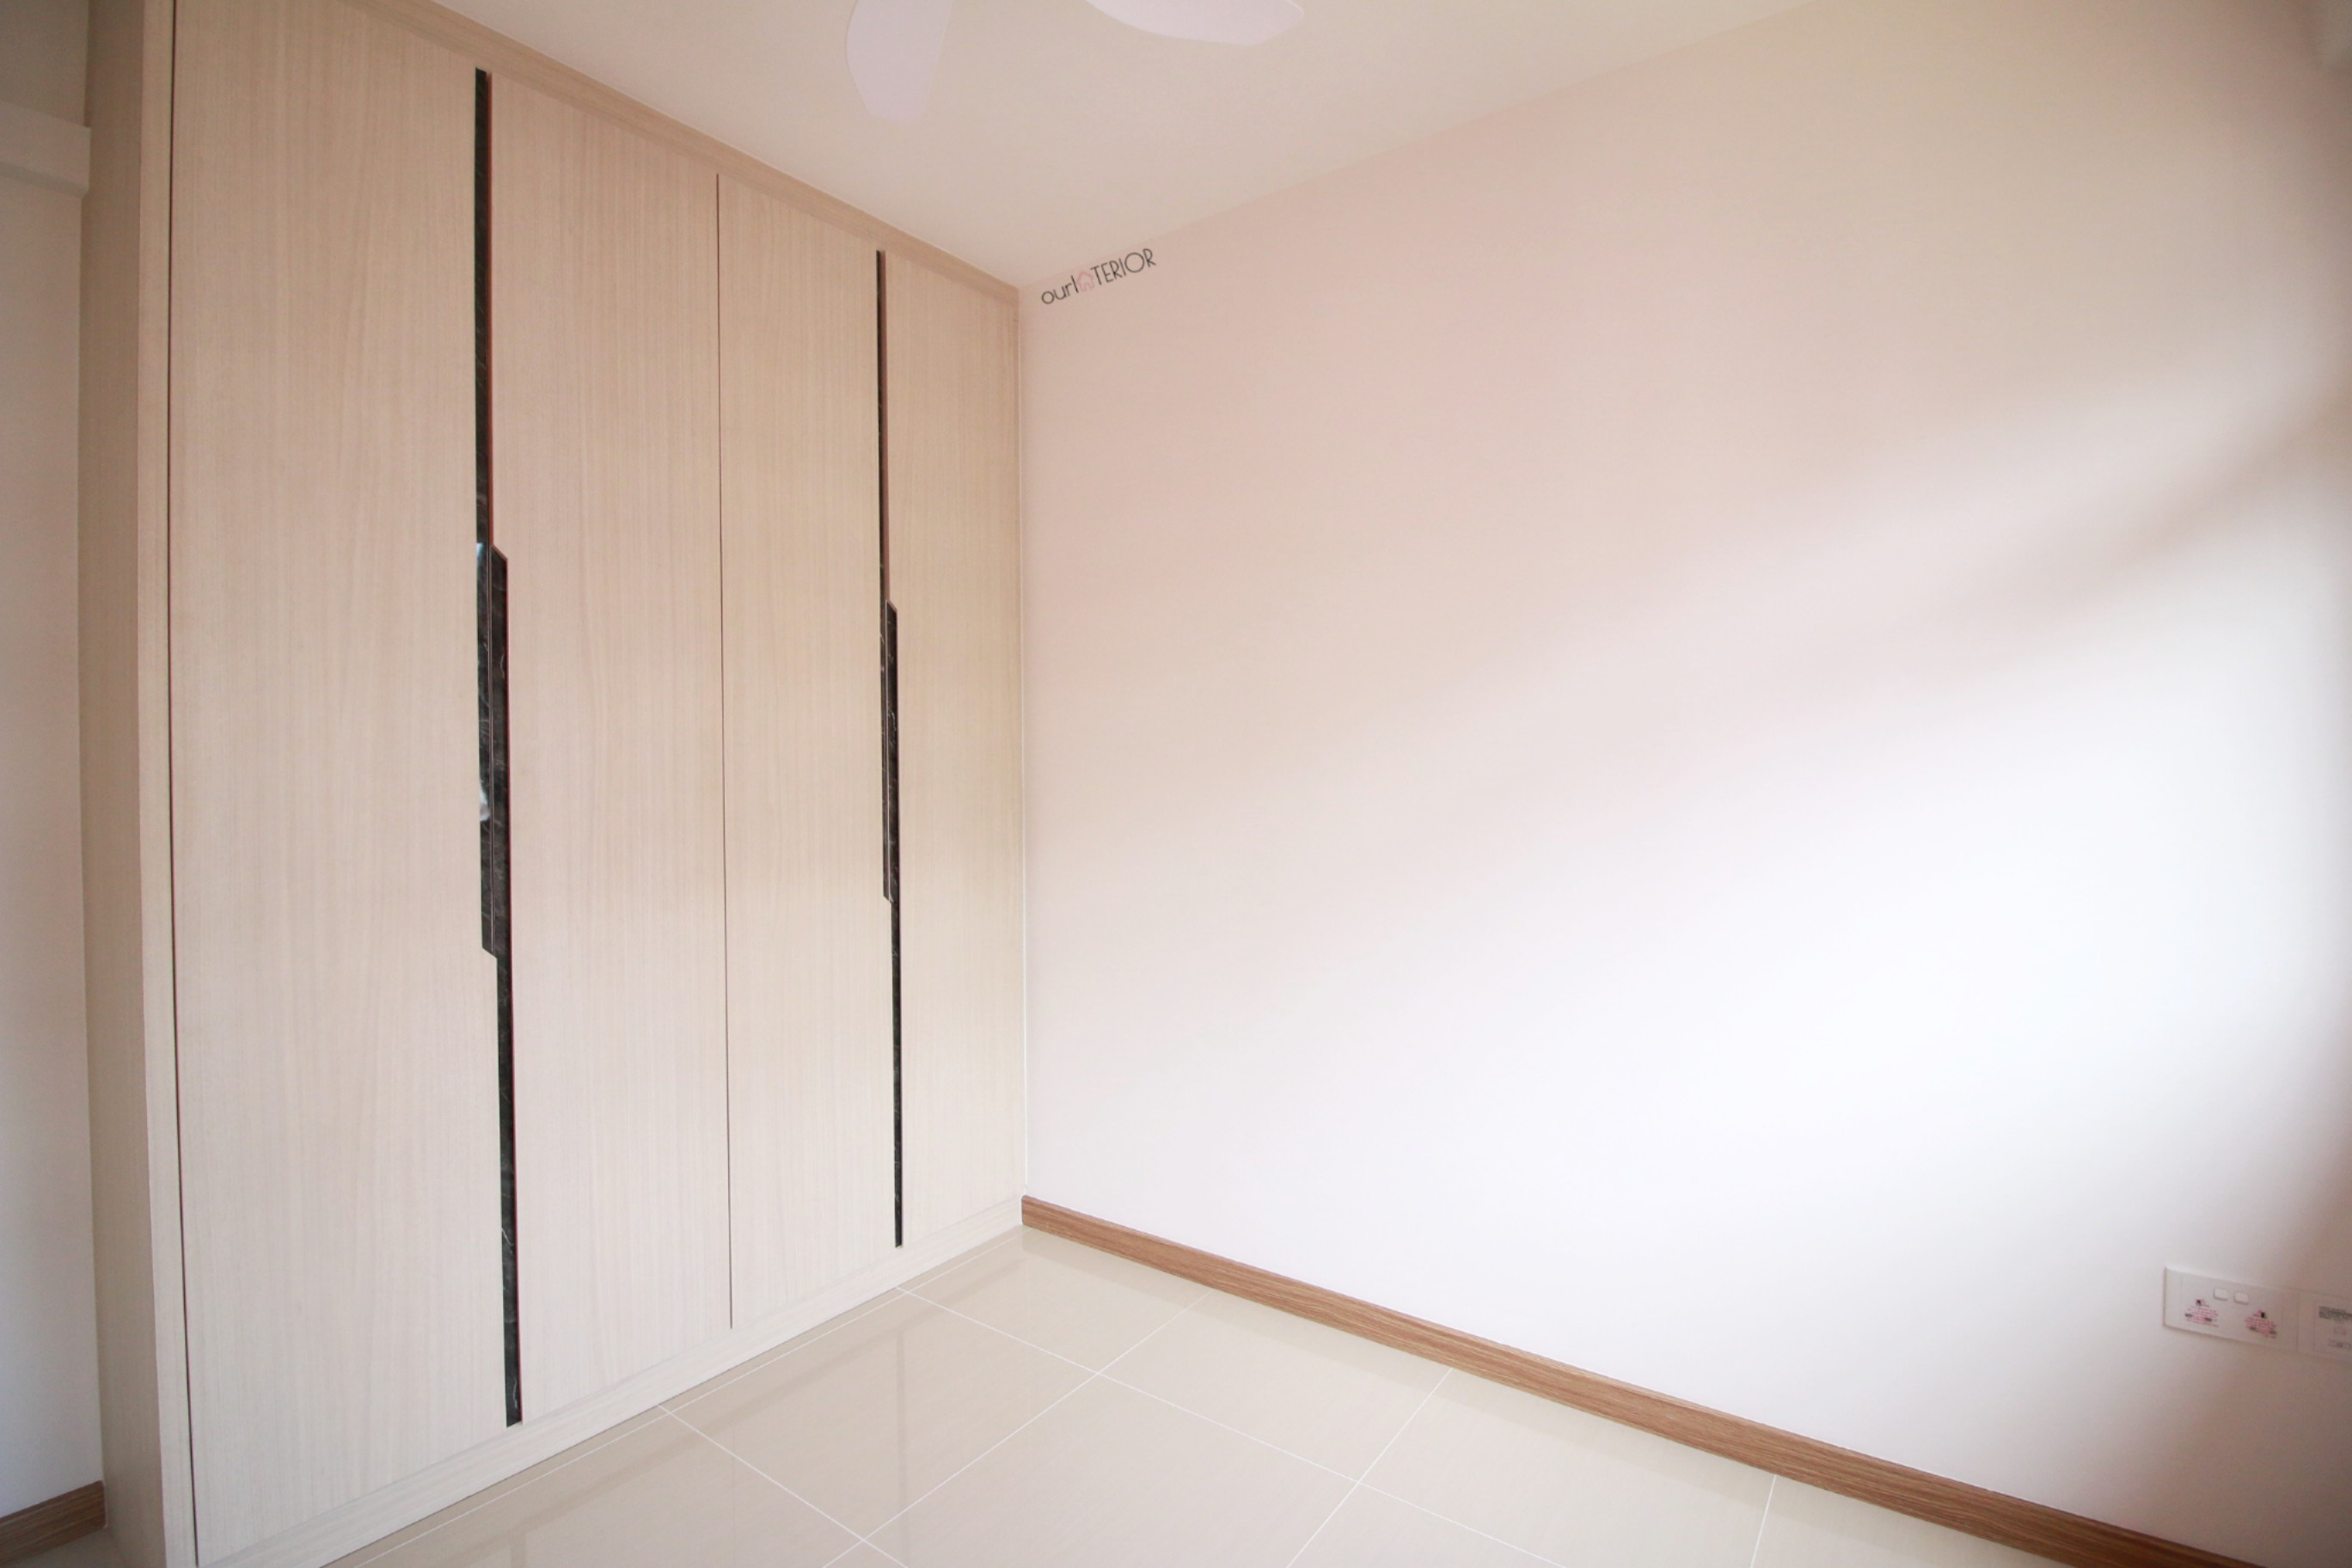 455A Sengkang West Avenue BTO 2 Room